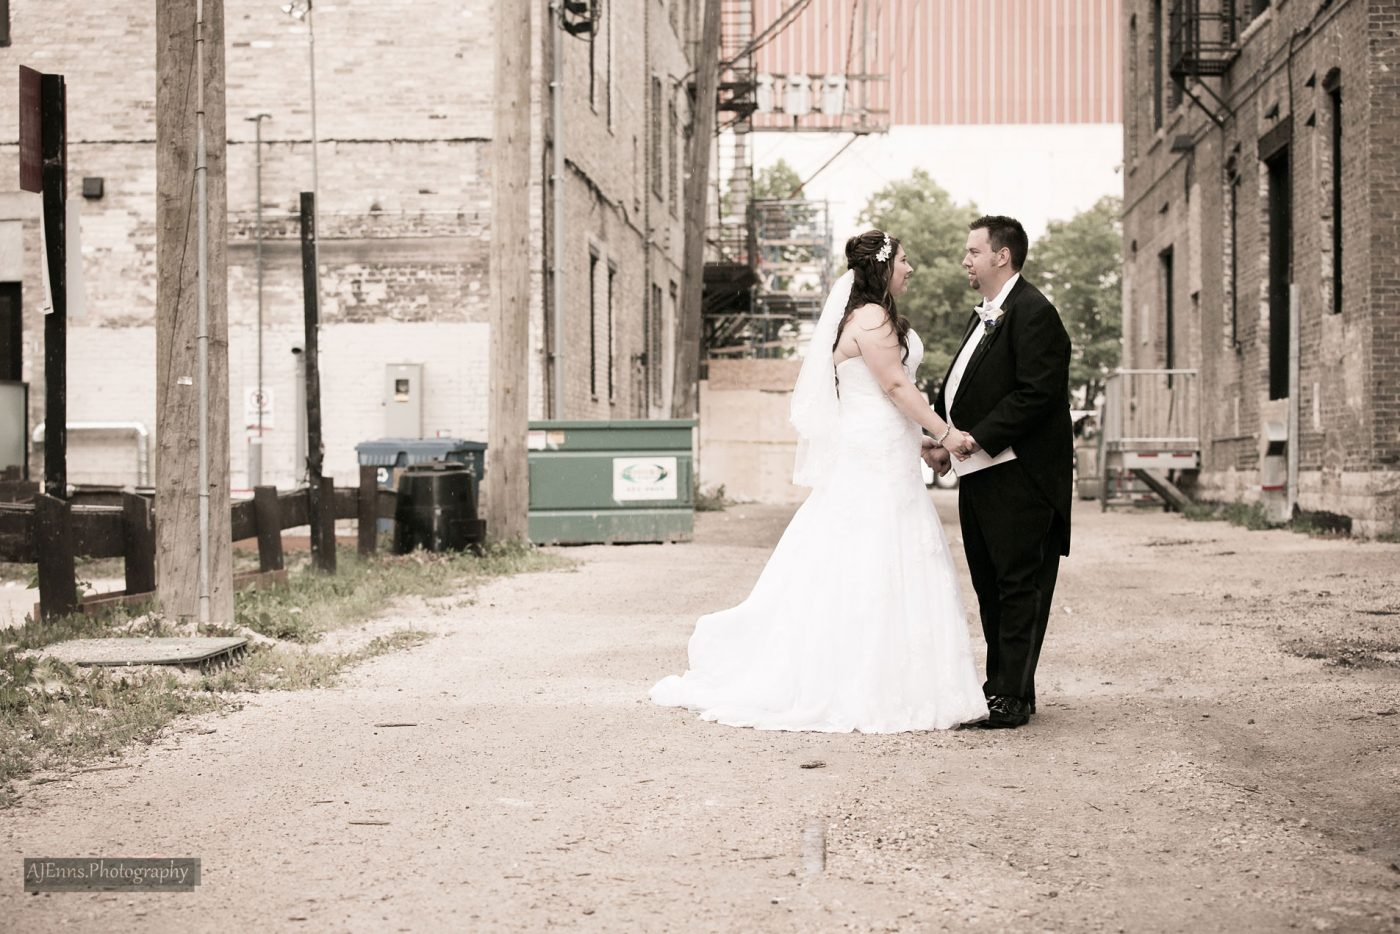 Bride and groom in a back alley in the rain